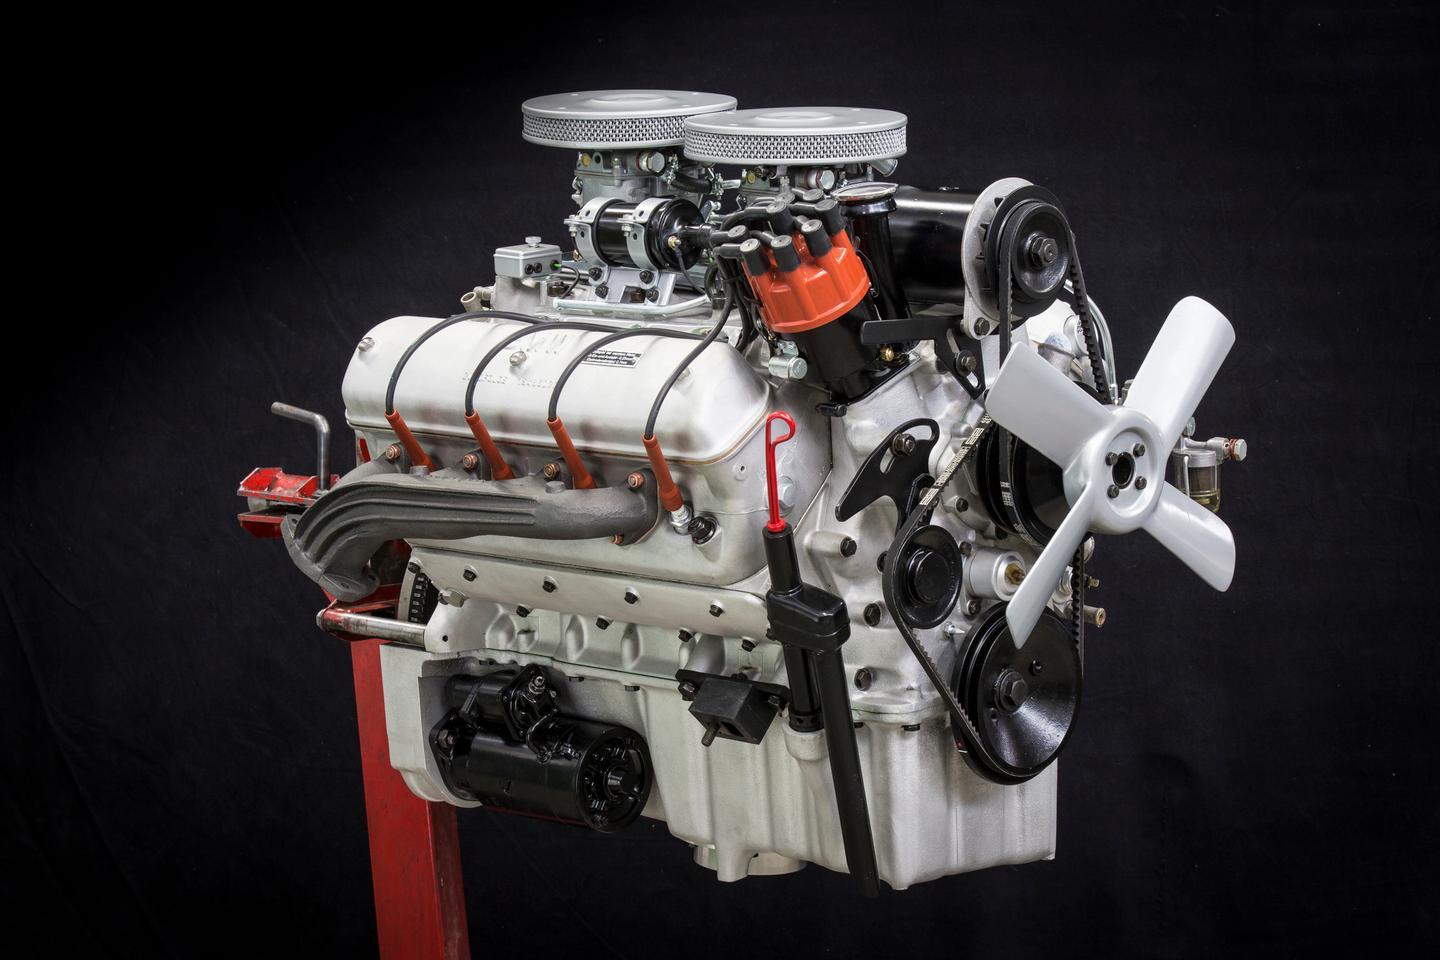 The 3.2-liter V8 engine was rebuilt using a combination of original and spare parts